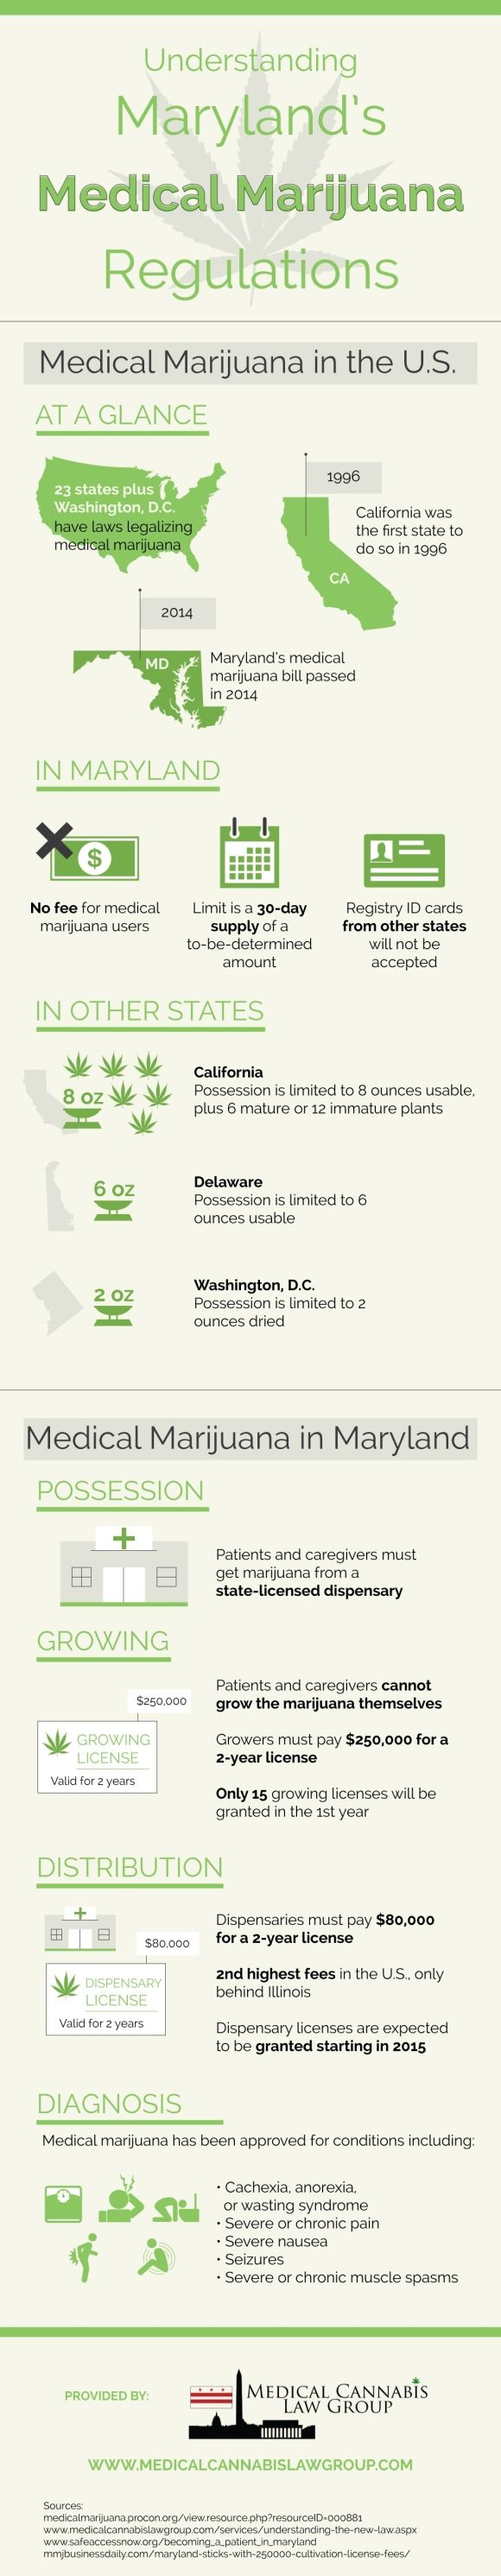 Do you know why medical marijuana is prescribed? It has been approved for a variety of conditions, including seizures, severe or chronic pain, severe nausea, and anorexia. Click over to this Rockville marijuana legalization infographic to learn more about the uses of medical marijuana.